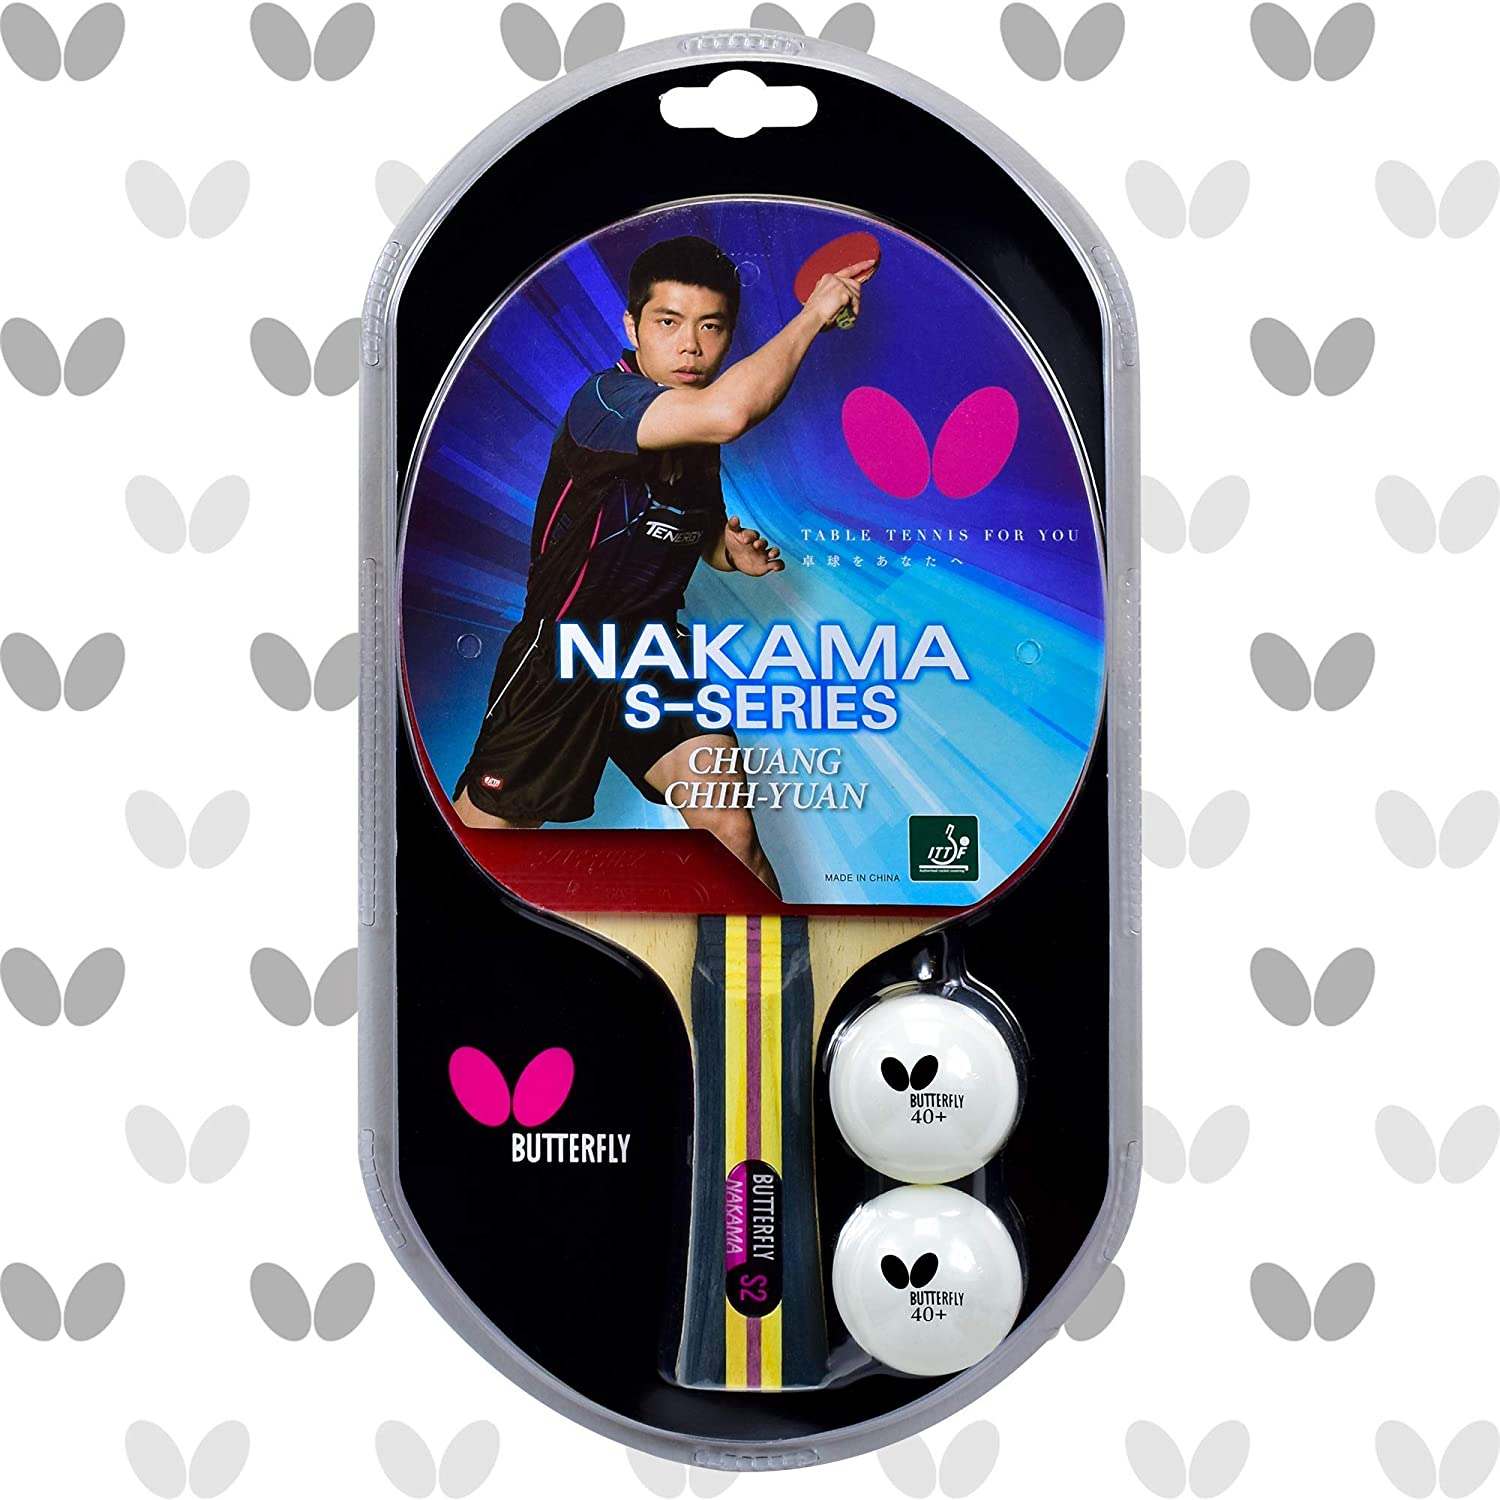 Deluxe Butterfly Nakama S2 It is very popular Shakehand Serie Racket Tennis Table